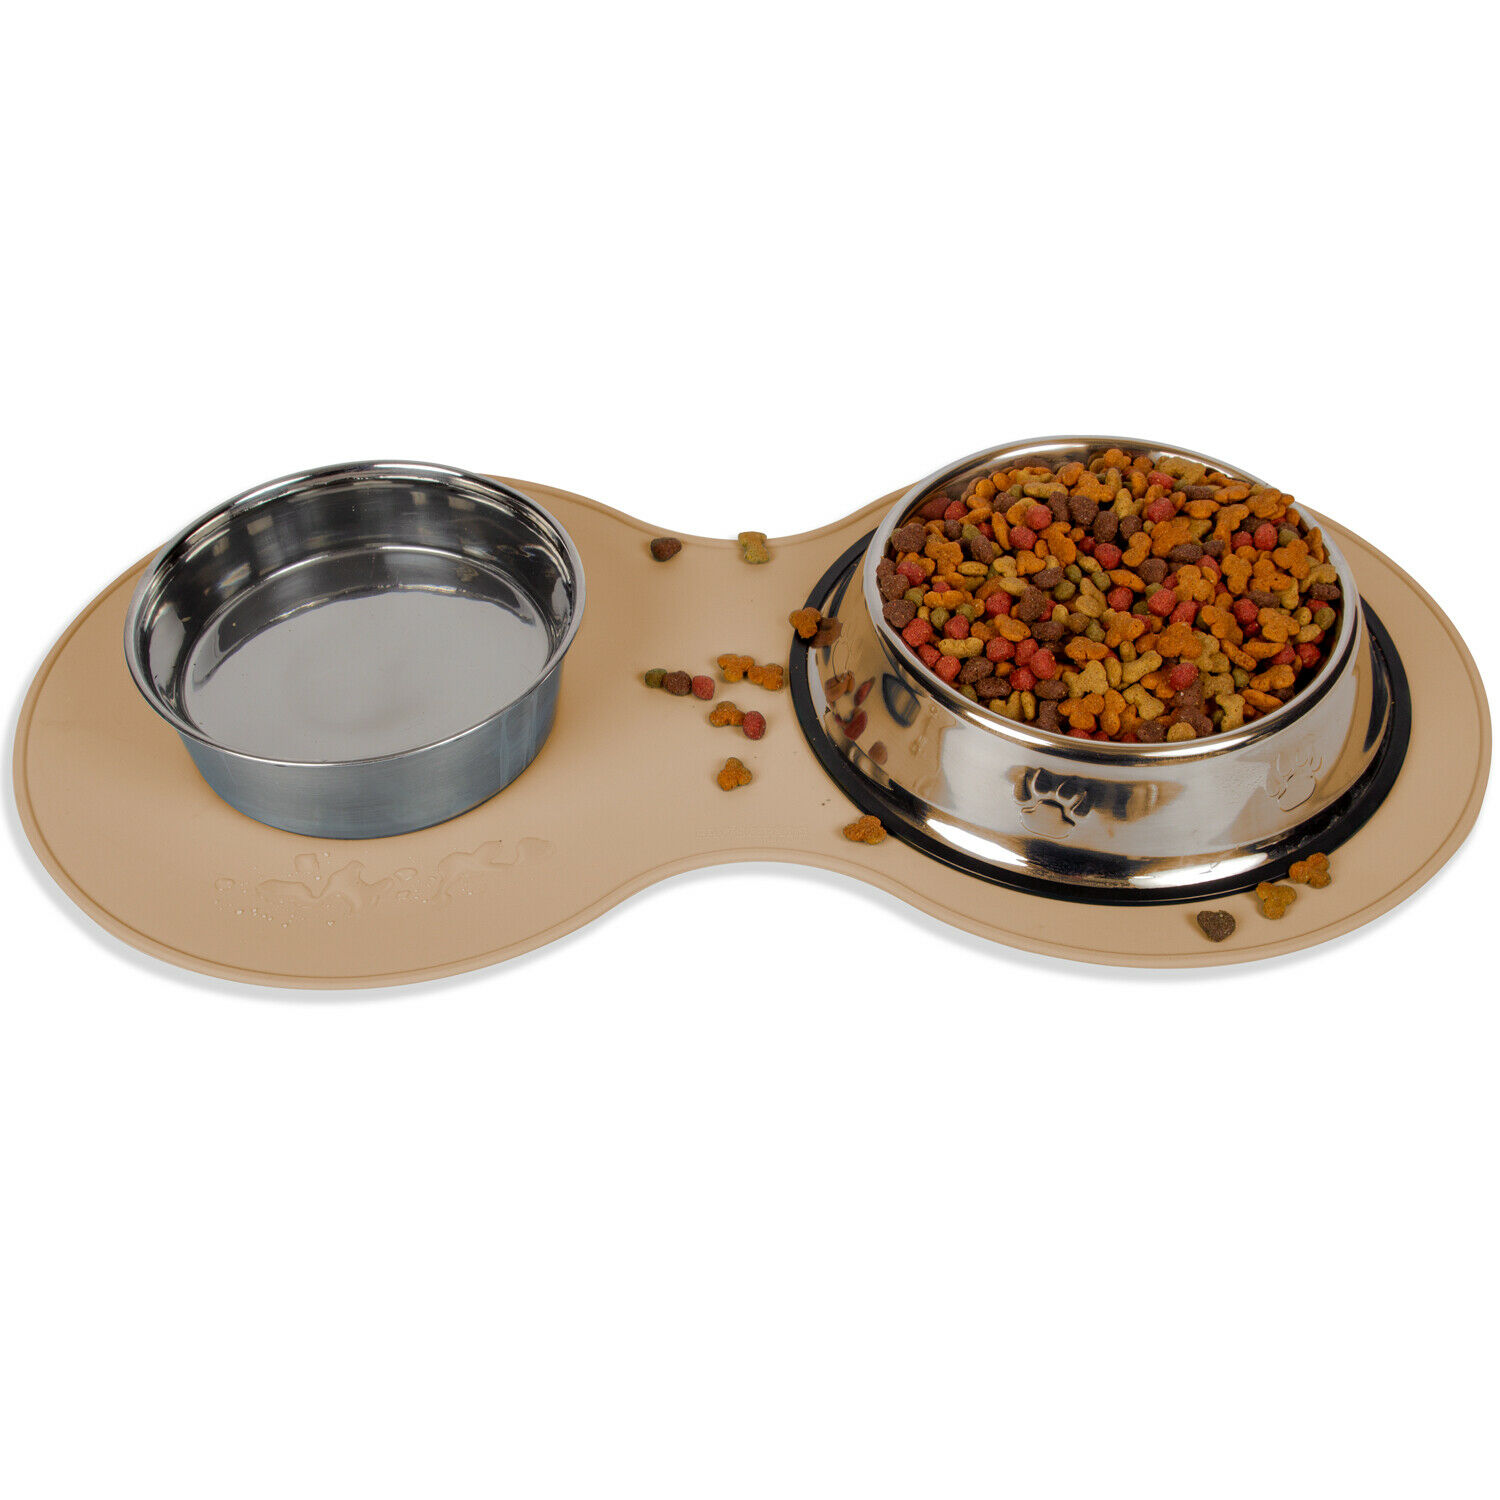 Pet Food Mat for Dog Cat Silicon Waterproof Placemat Dish Bowl Clean Feeding- LG